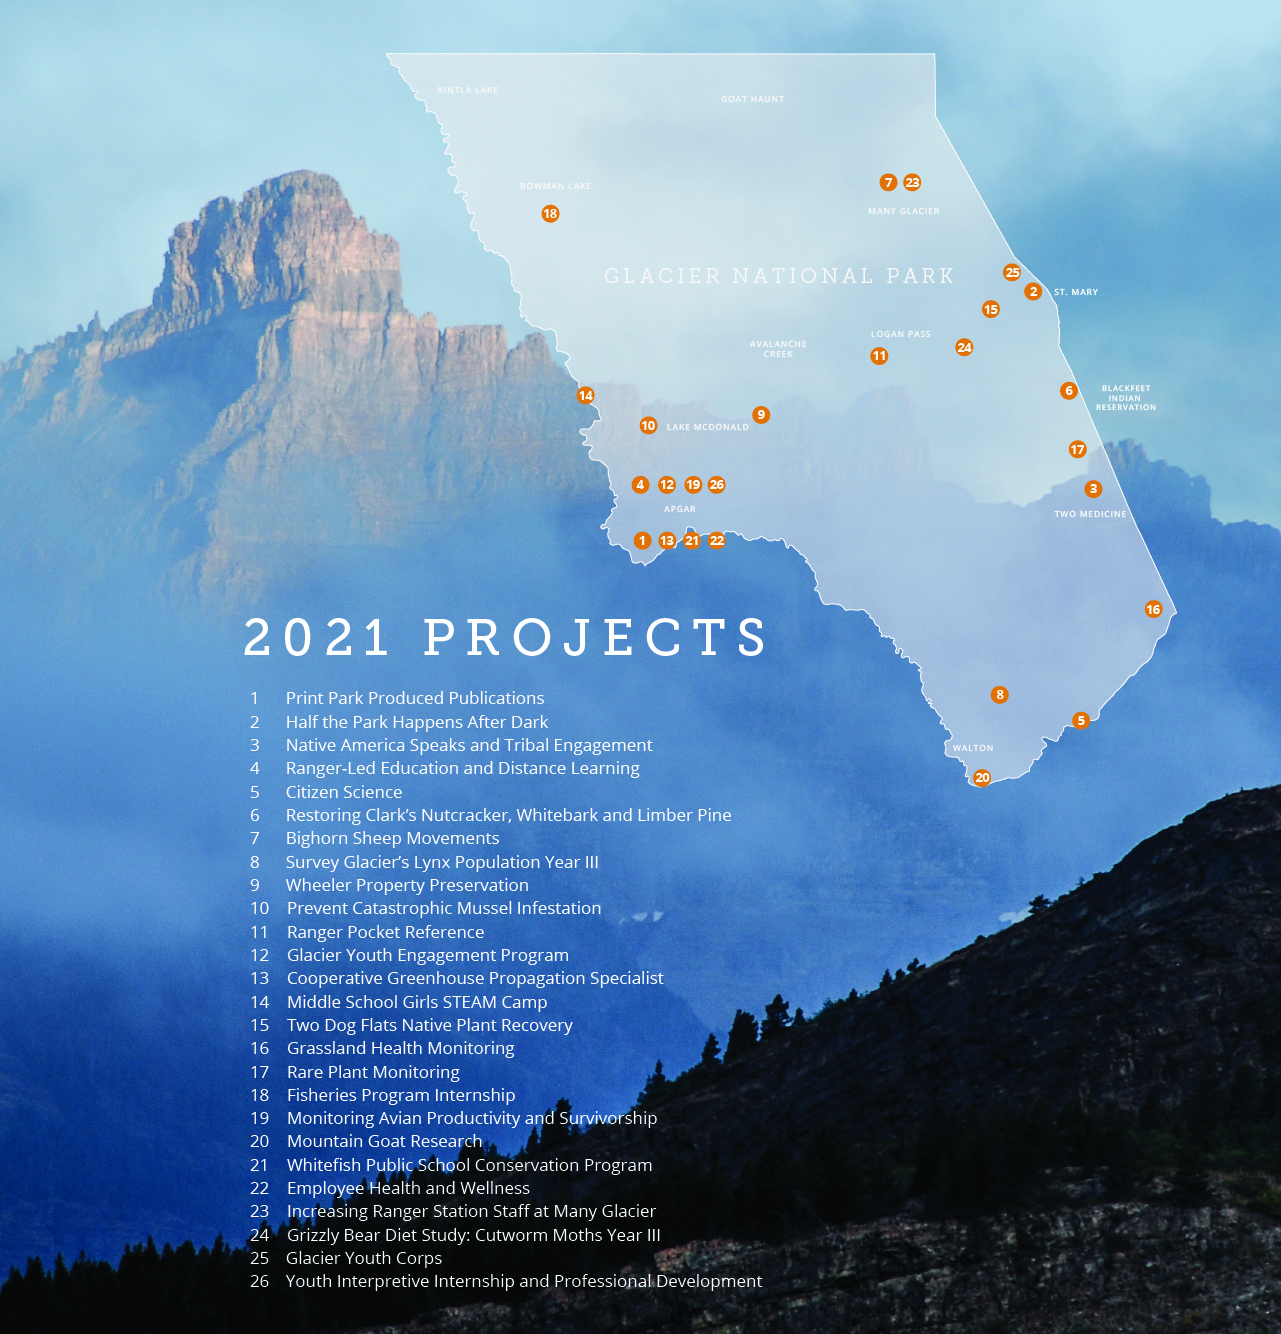 Map of Glacier National Park with 26 project locations.